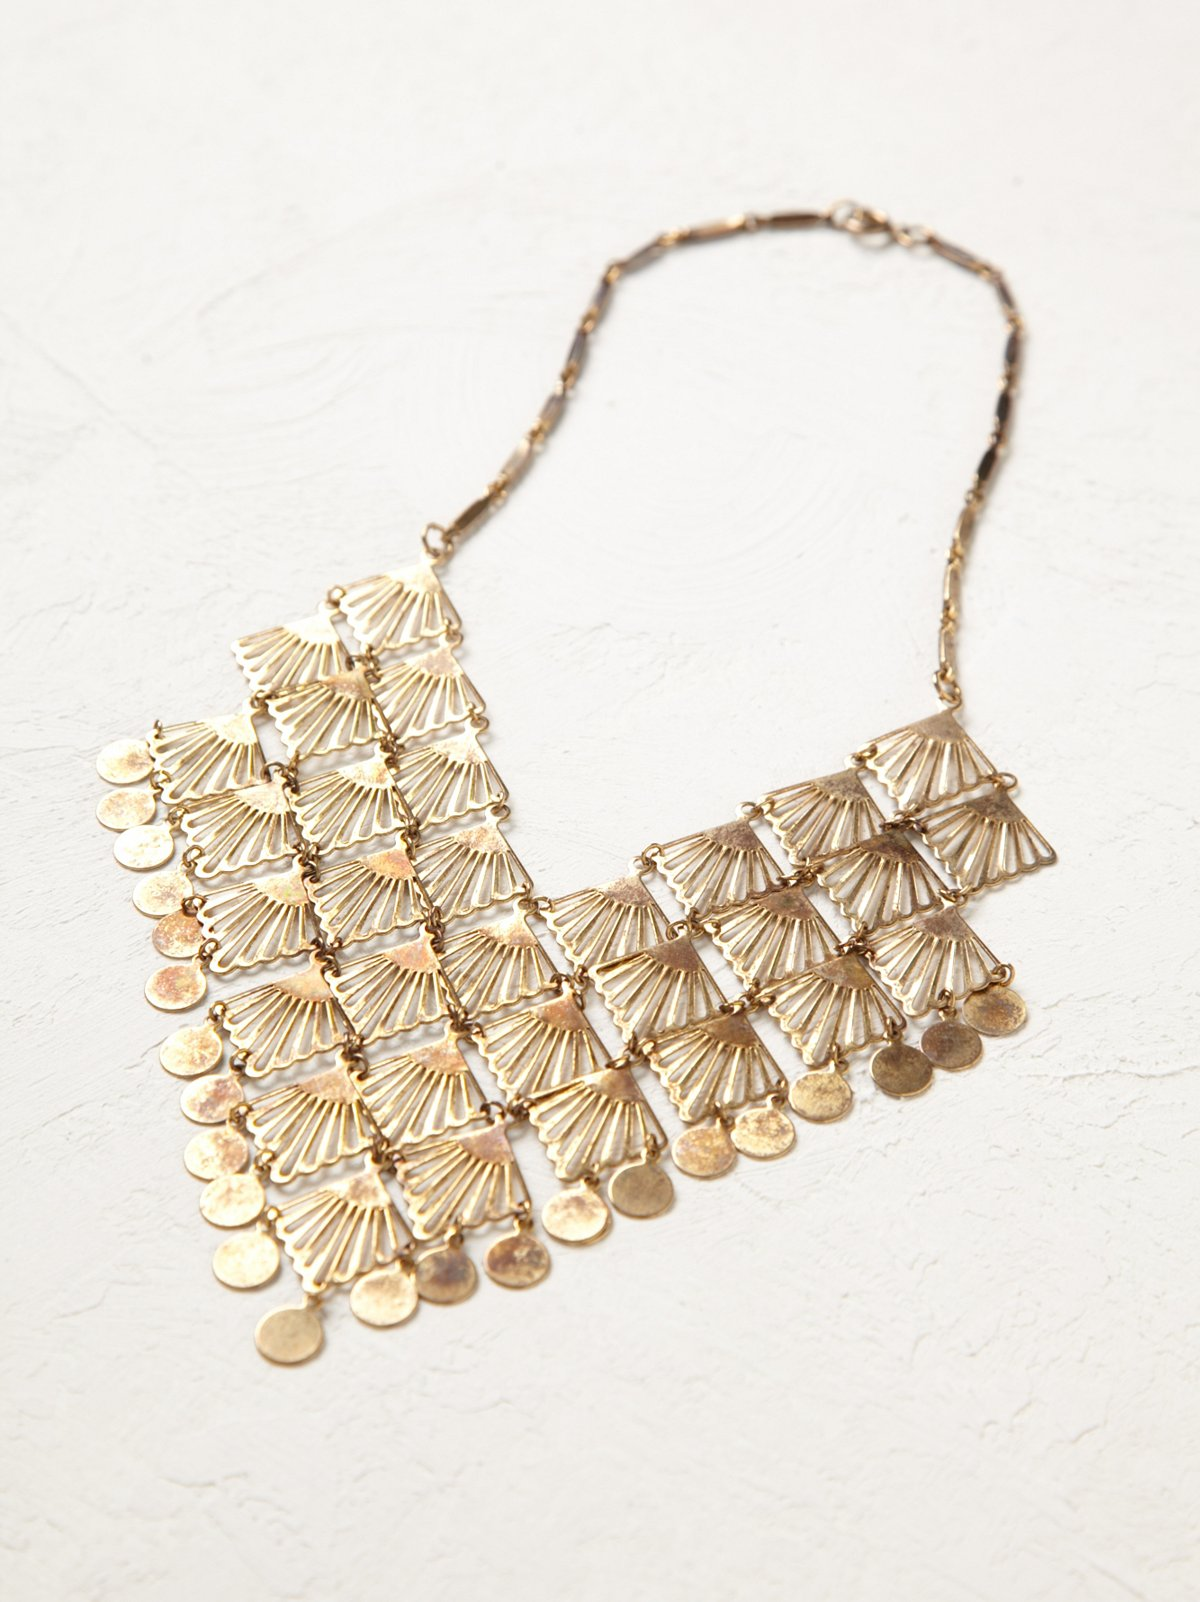 Vintage Brass Fan Necklace